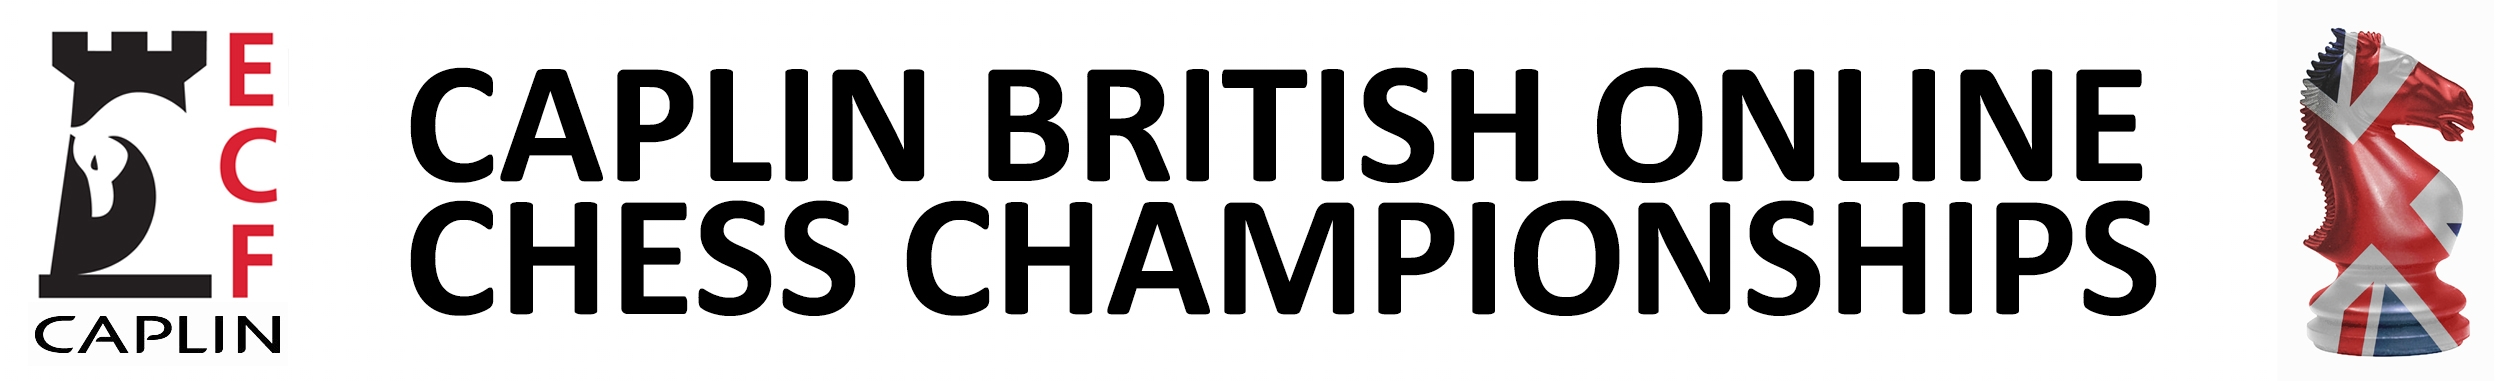 BRITISH ONLINE CHAMPIONSHIPS 18th December - 3rd January